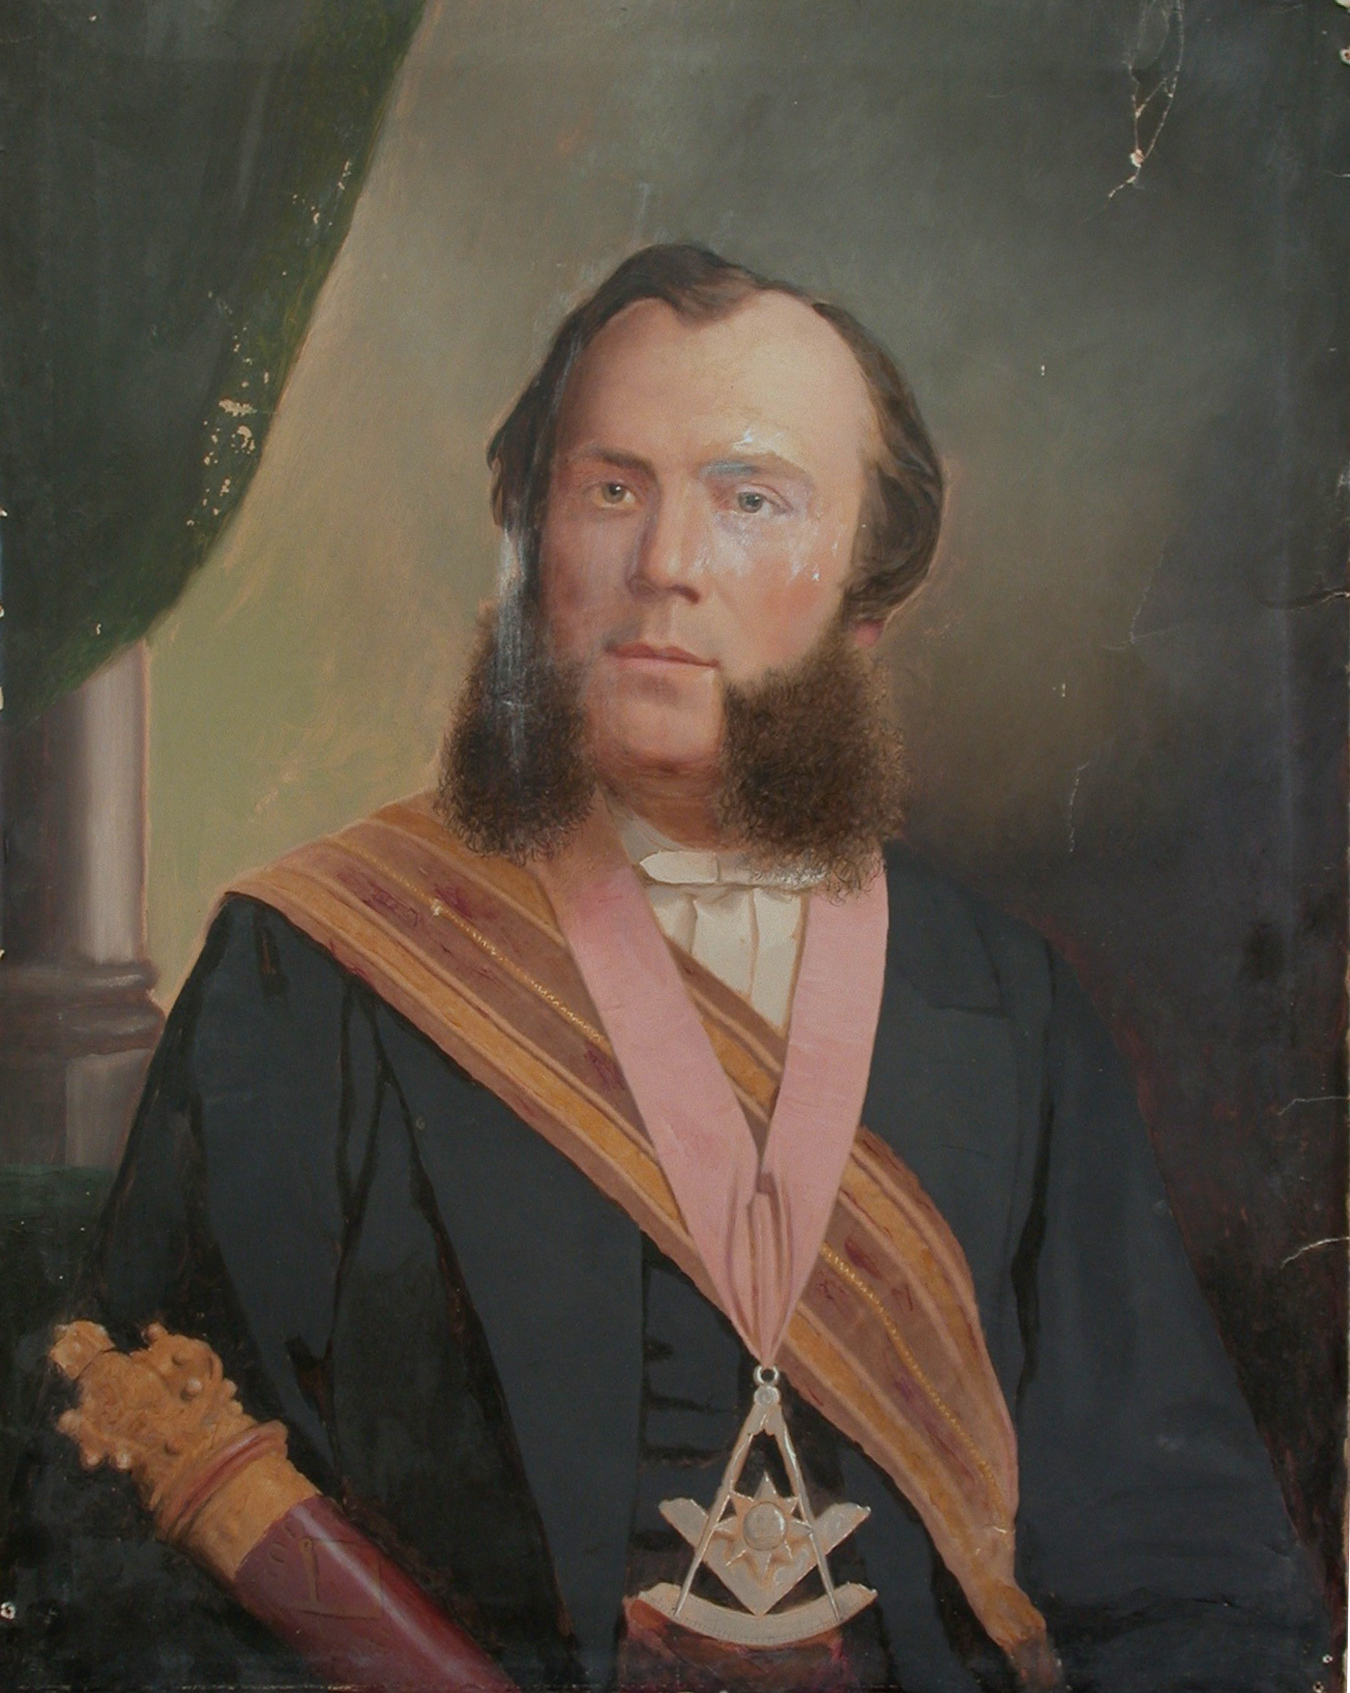 Portrait of John Willison Hutton before treatment